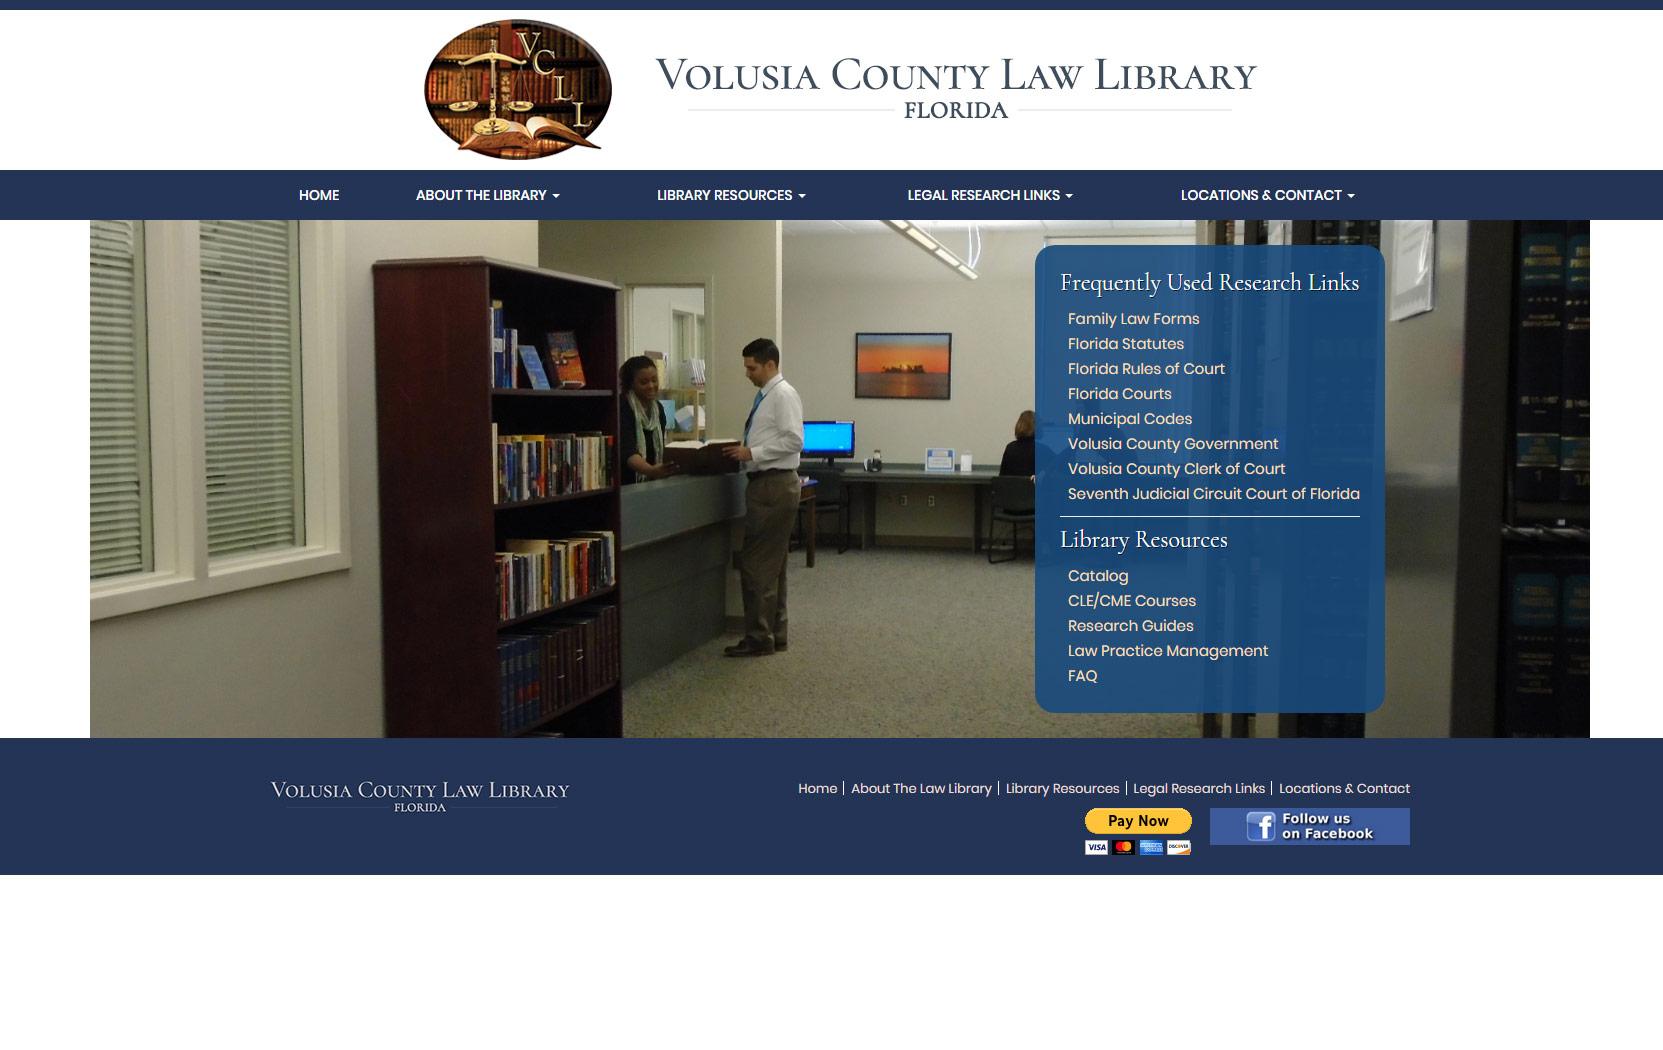 Volusia County Law Library